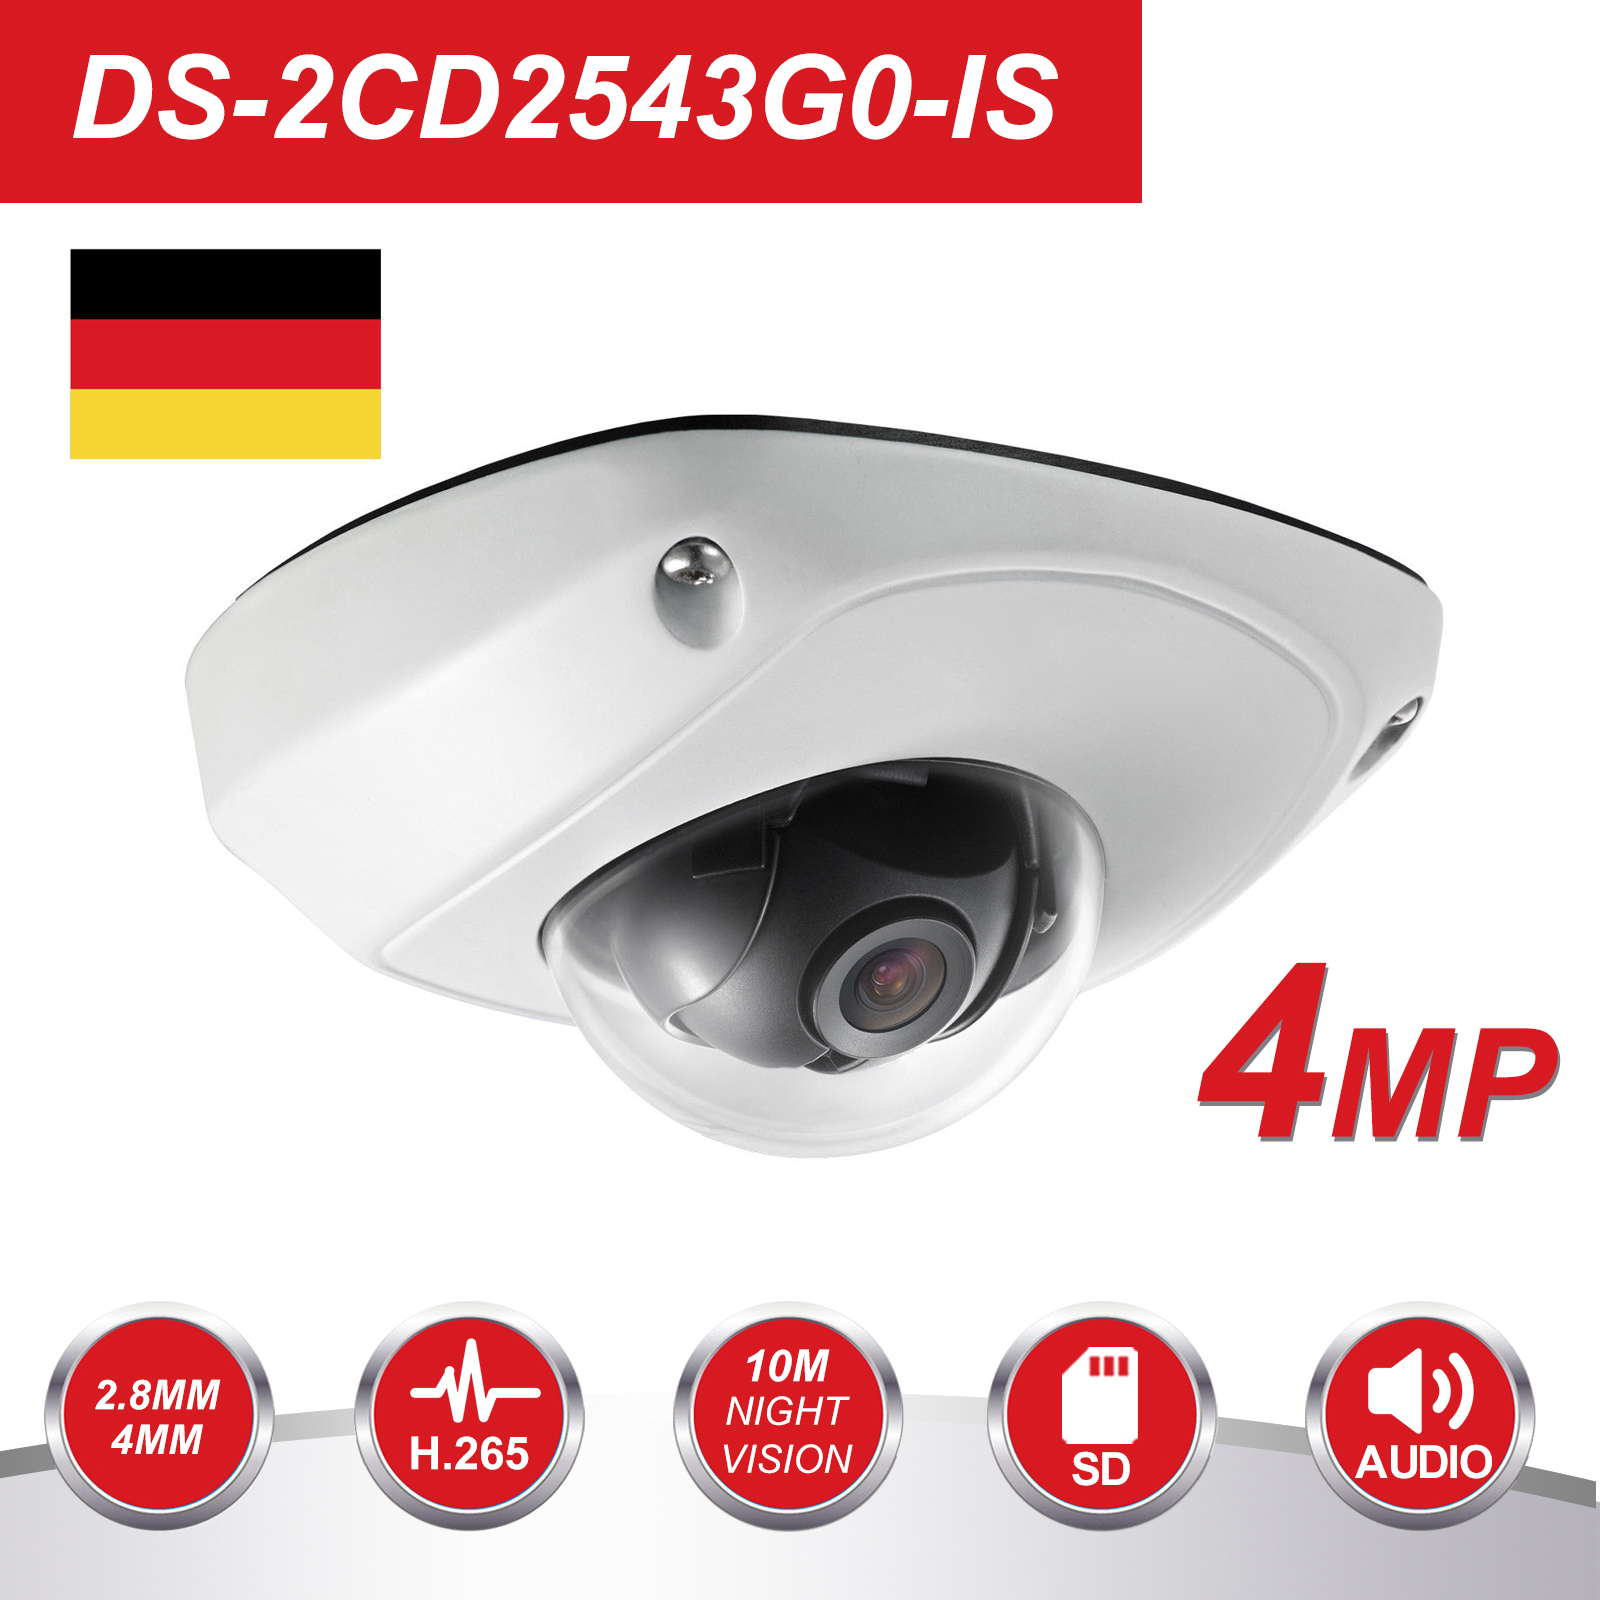 HIK Video Surveillance Camera Outdoor DS-2CD2543G0-IS 4MP IR Fixed Mini Dome Security IP Cameras POE H.265+ Built-in Micro